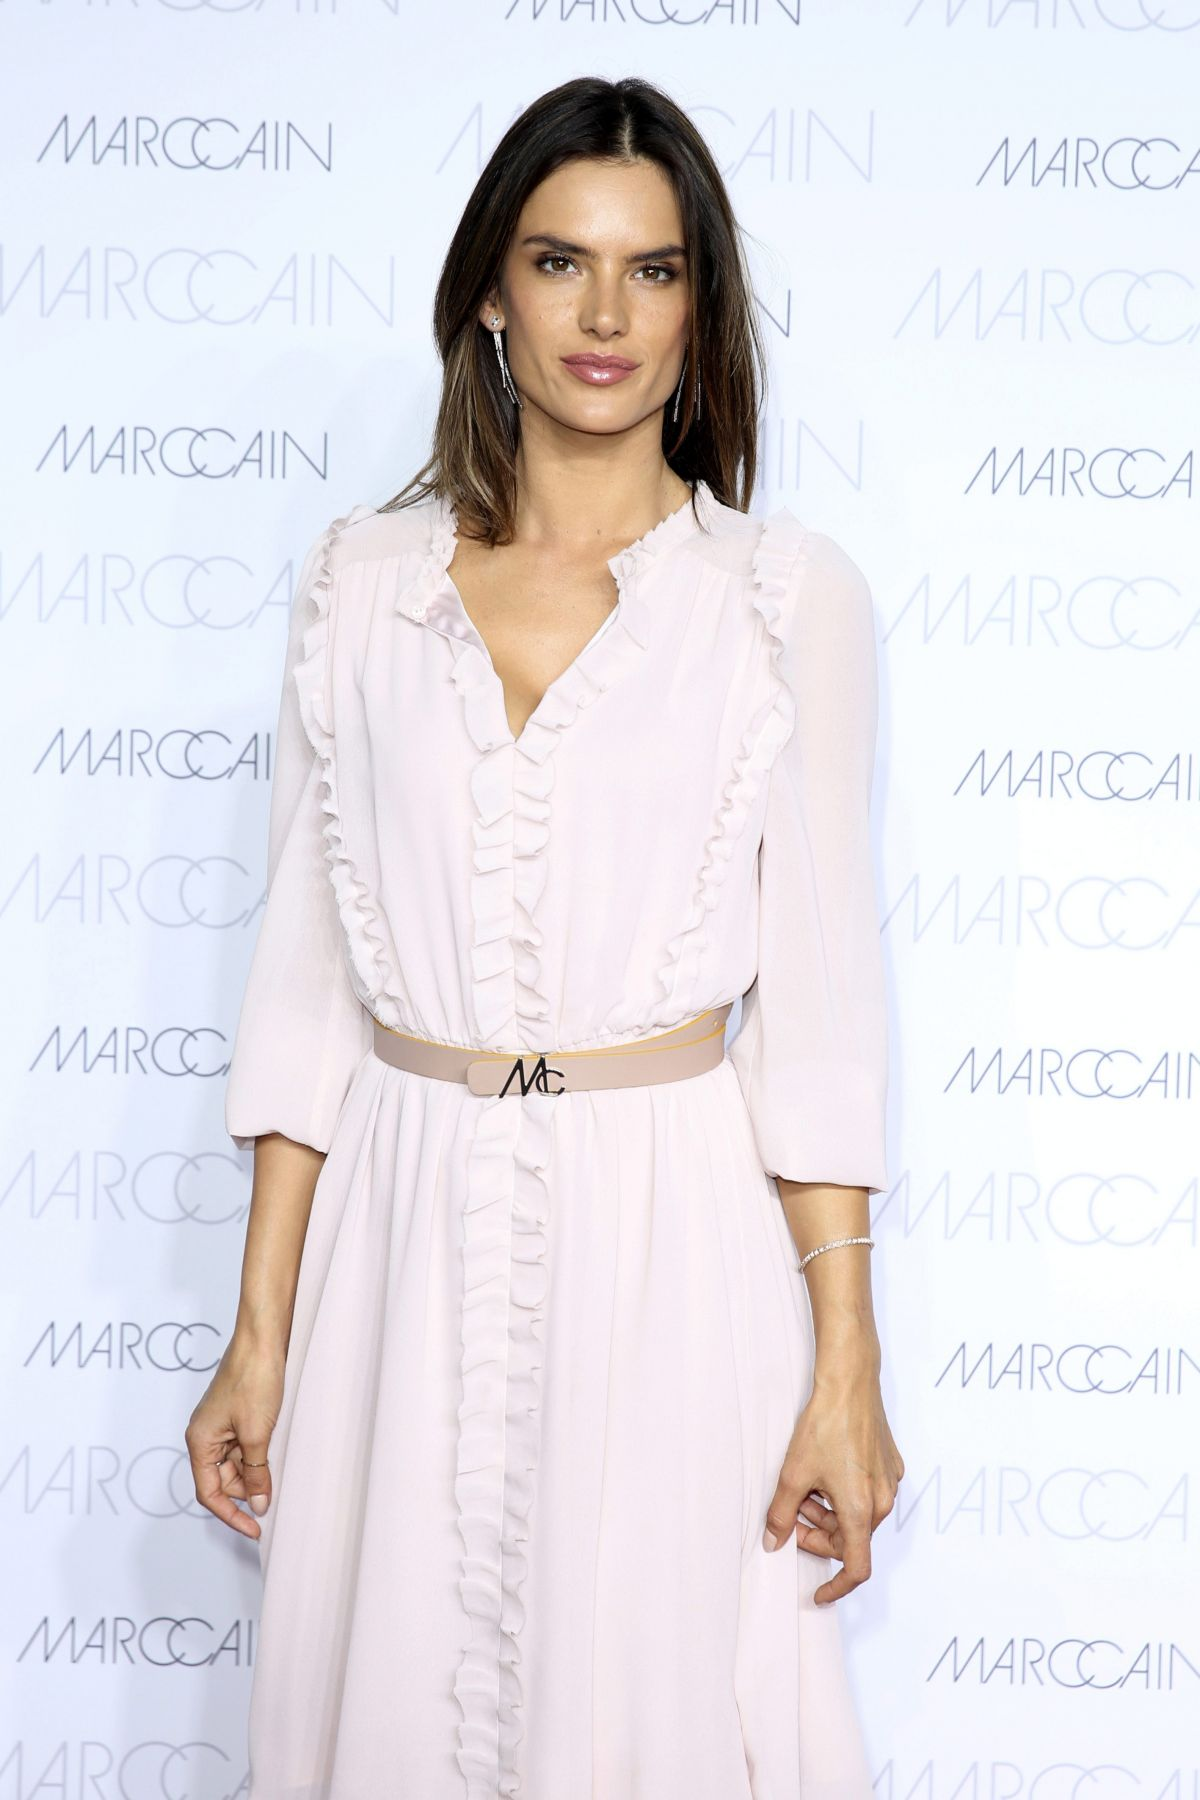 ALESSANDRA AMBROSIO at Presentation of Spring/Summer 2017 Collection of Mac Cain 06/28/2016